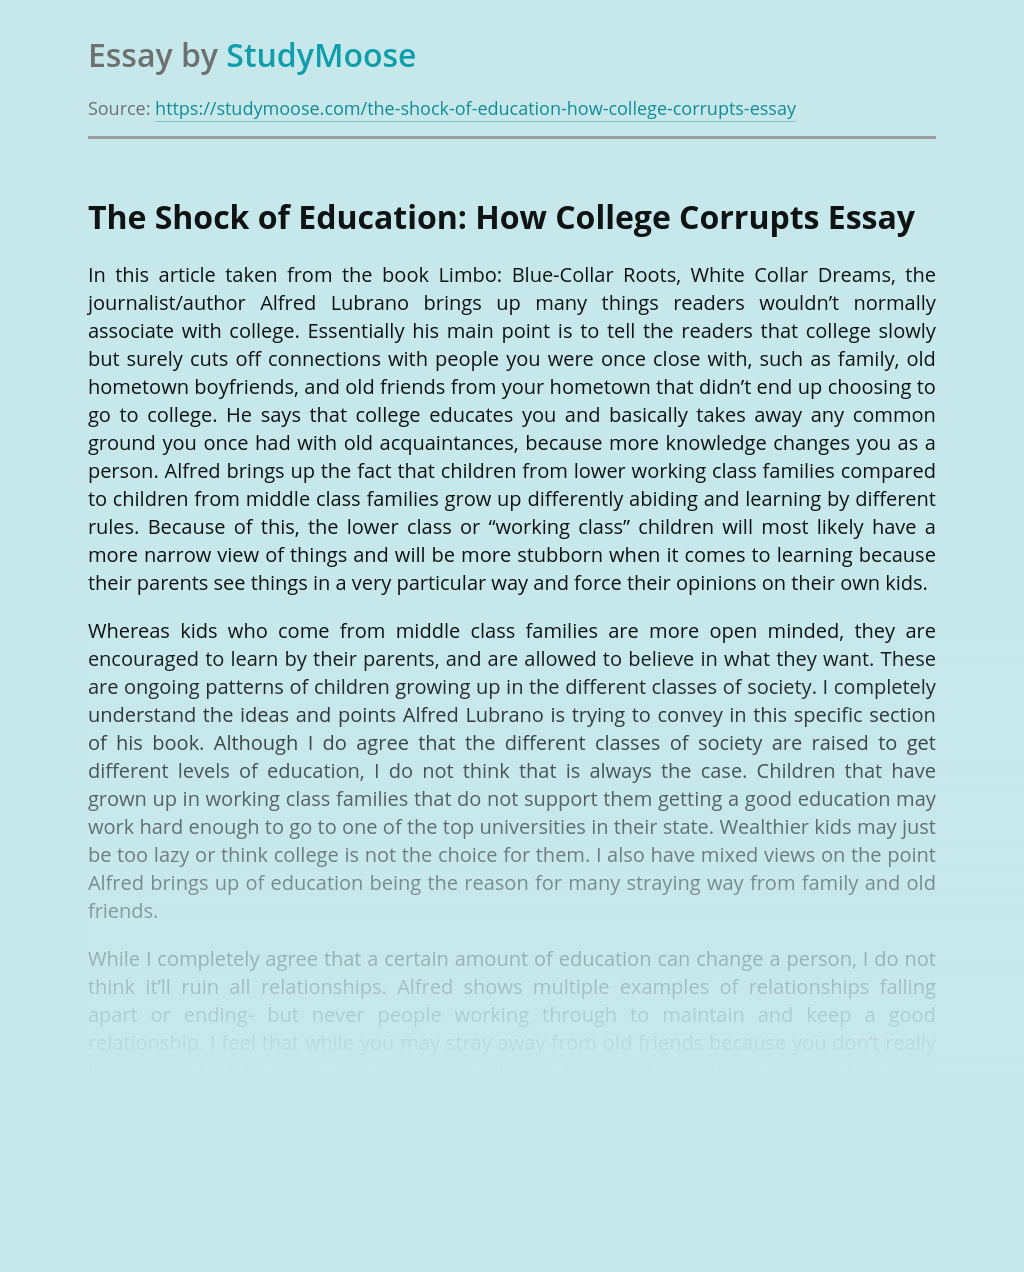 The Shock of Education: How College Corrupts